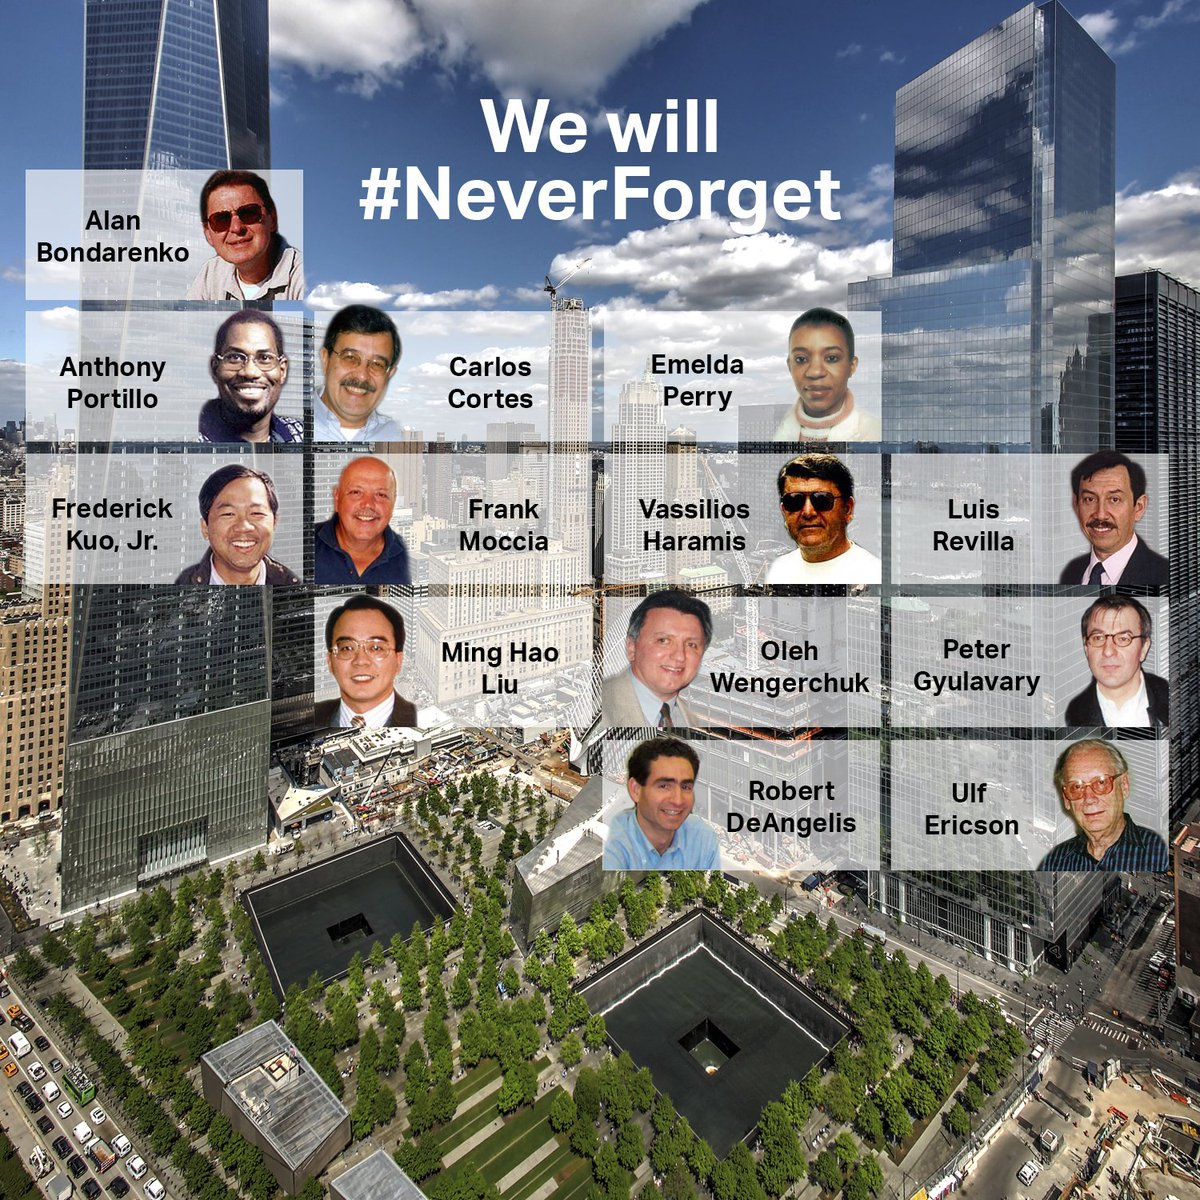 15 years later, we remember our colleagues and will #NeverForget all those who lost their lives that day. https://t.co/5QOWDKH8bo